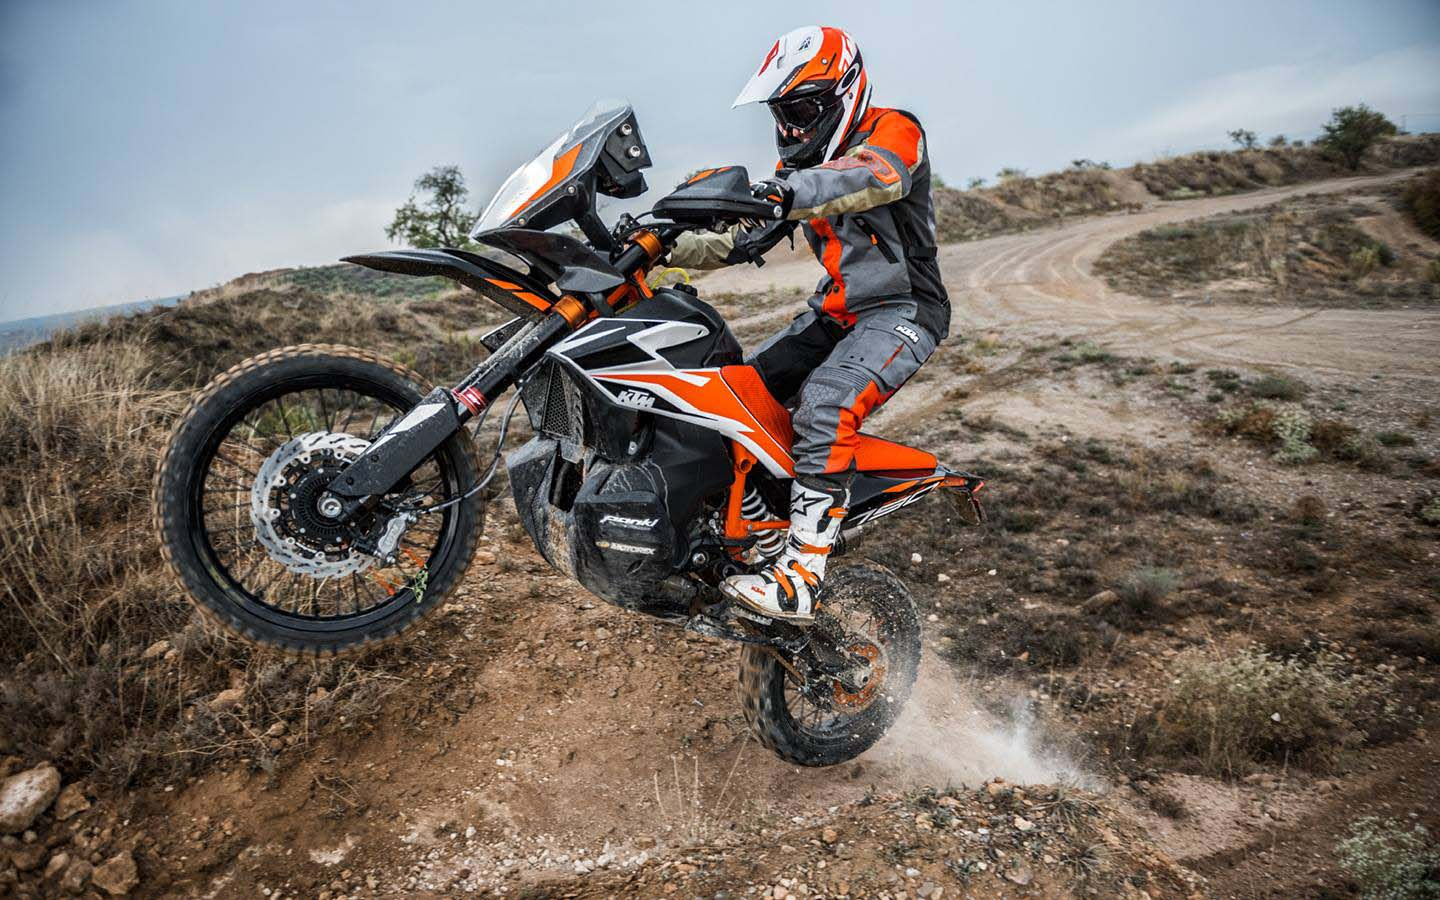 The Ktm 790 Adventure R Prototype In Action Asphalt Rubber